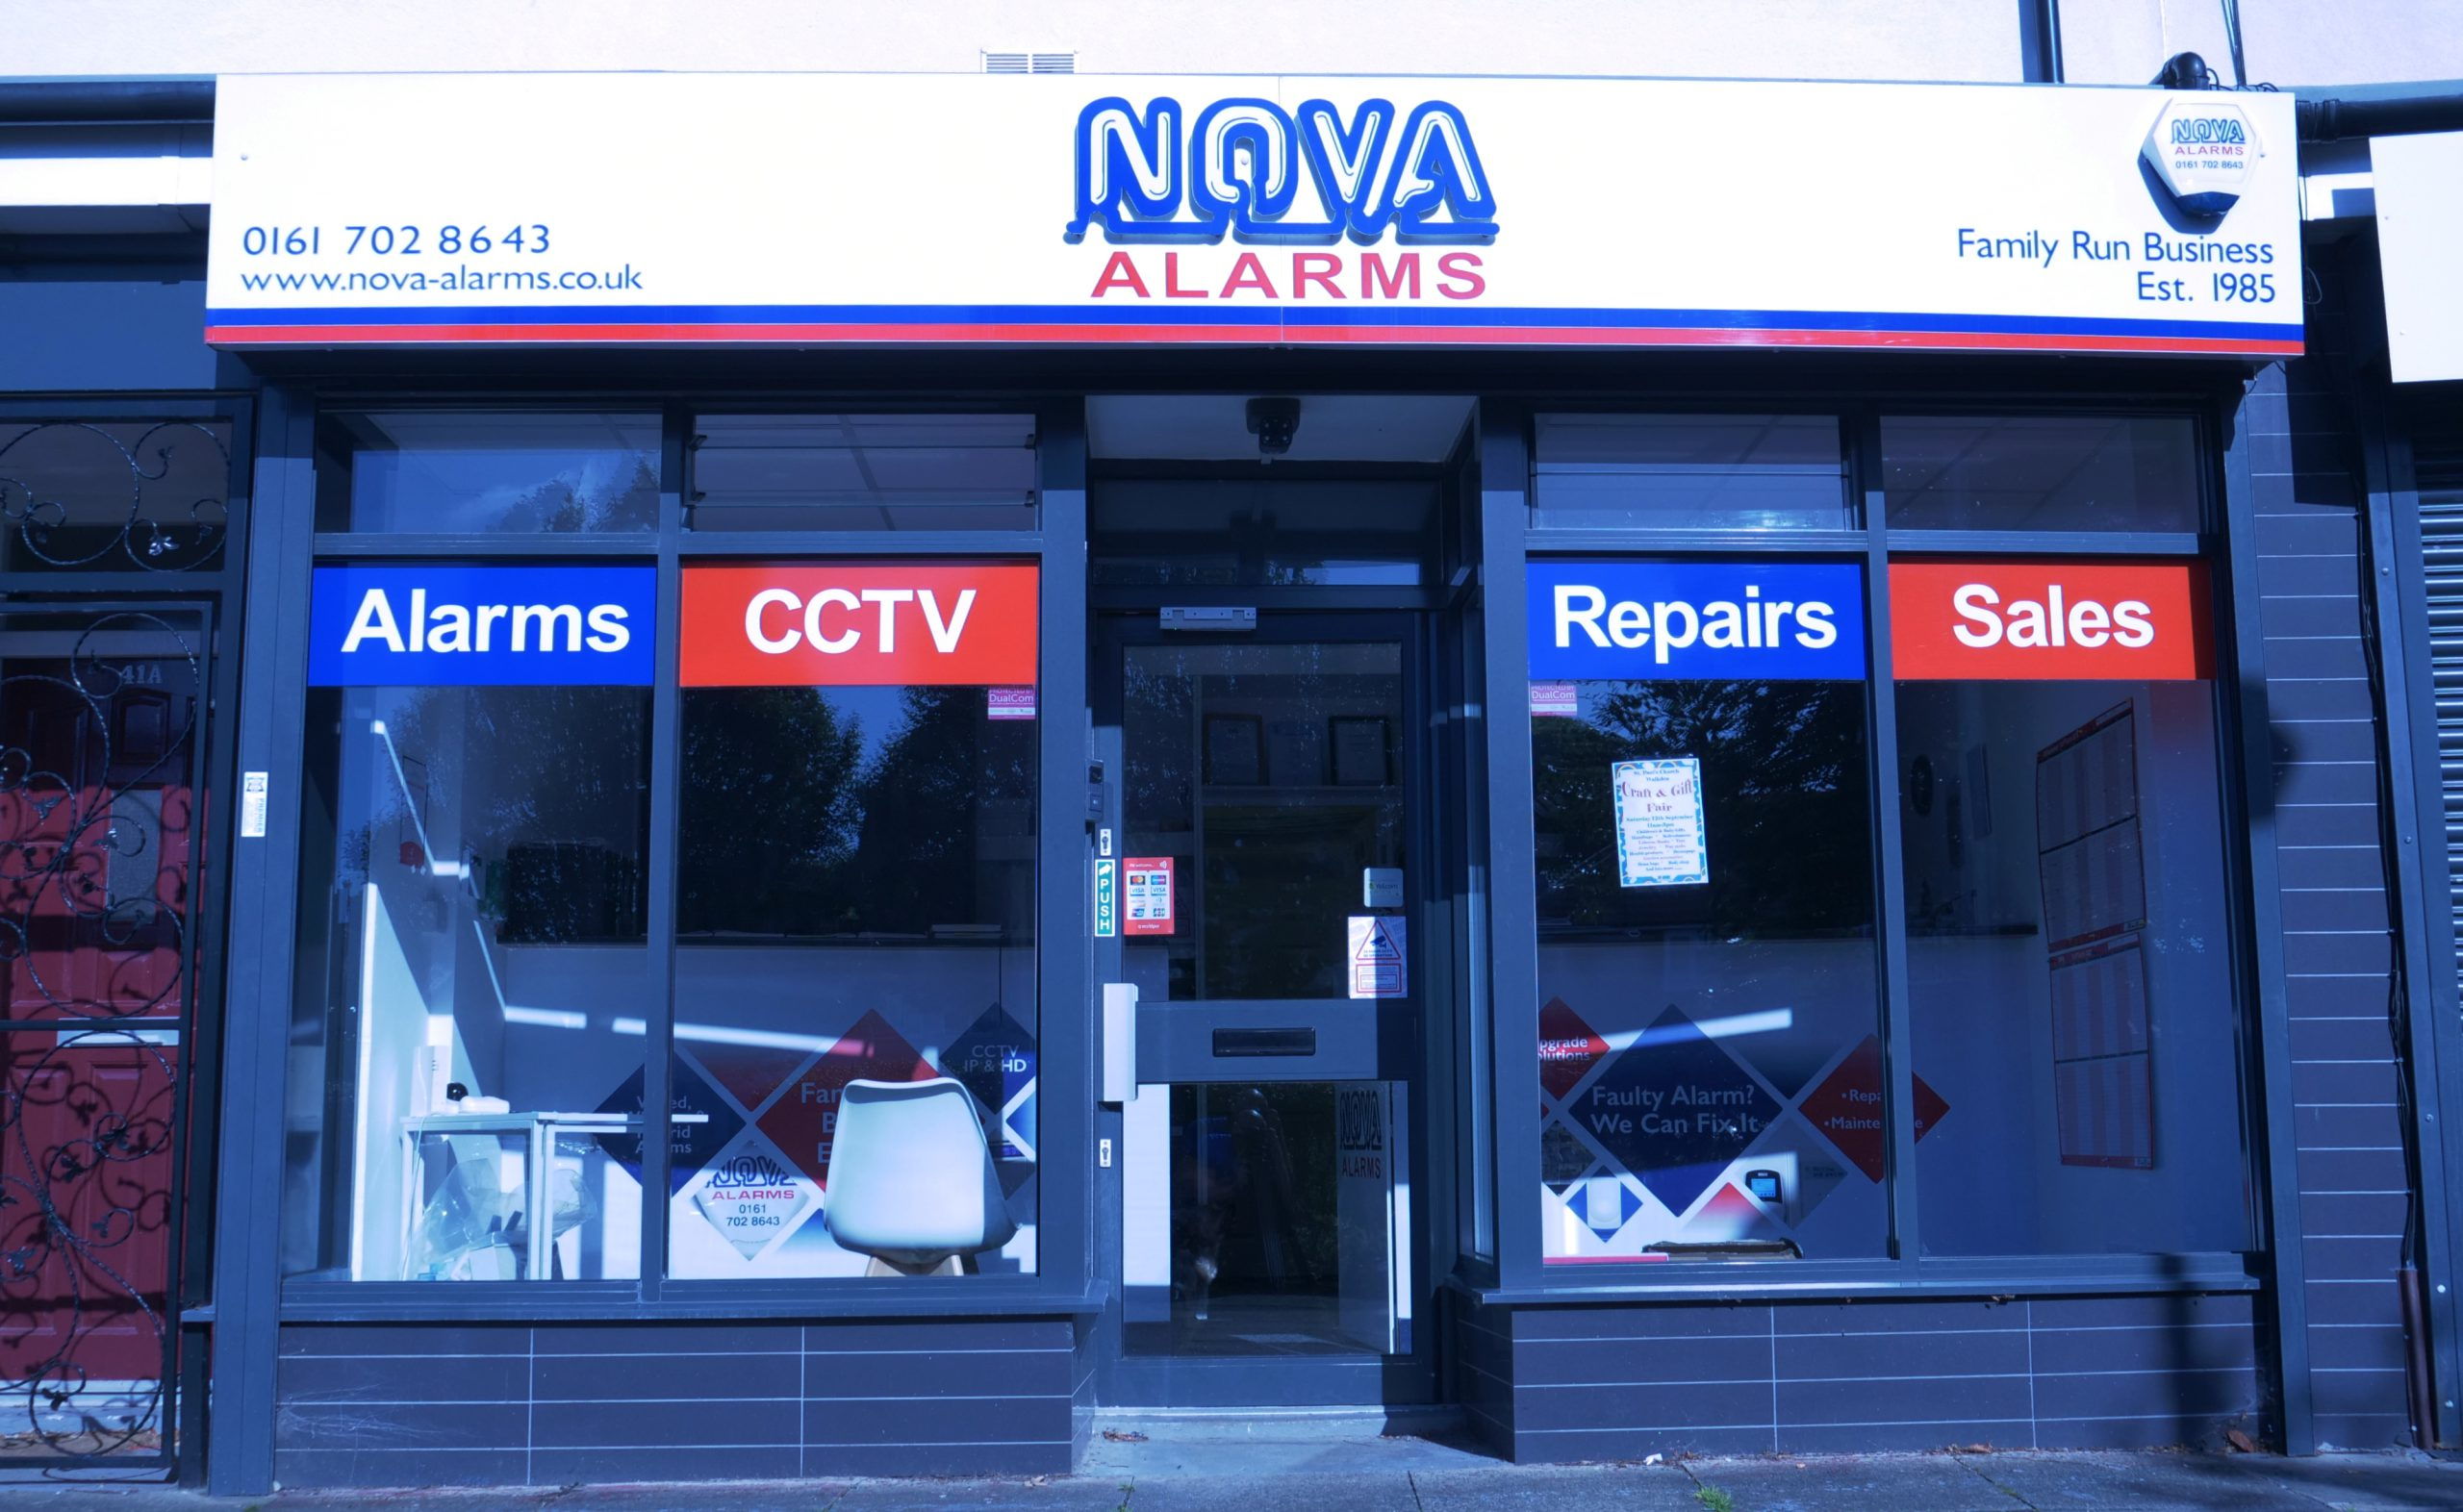 Why Choose Nova Alarms For Your Home Security?